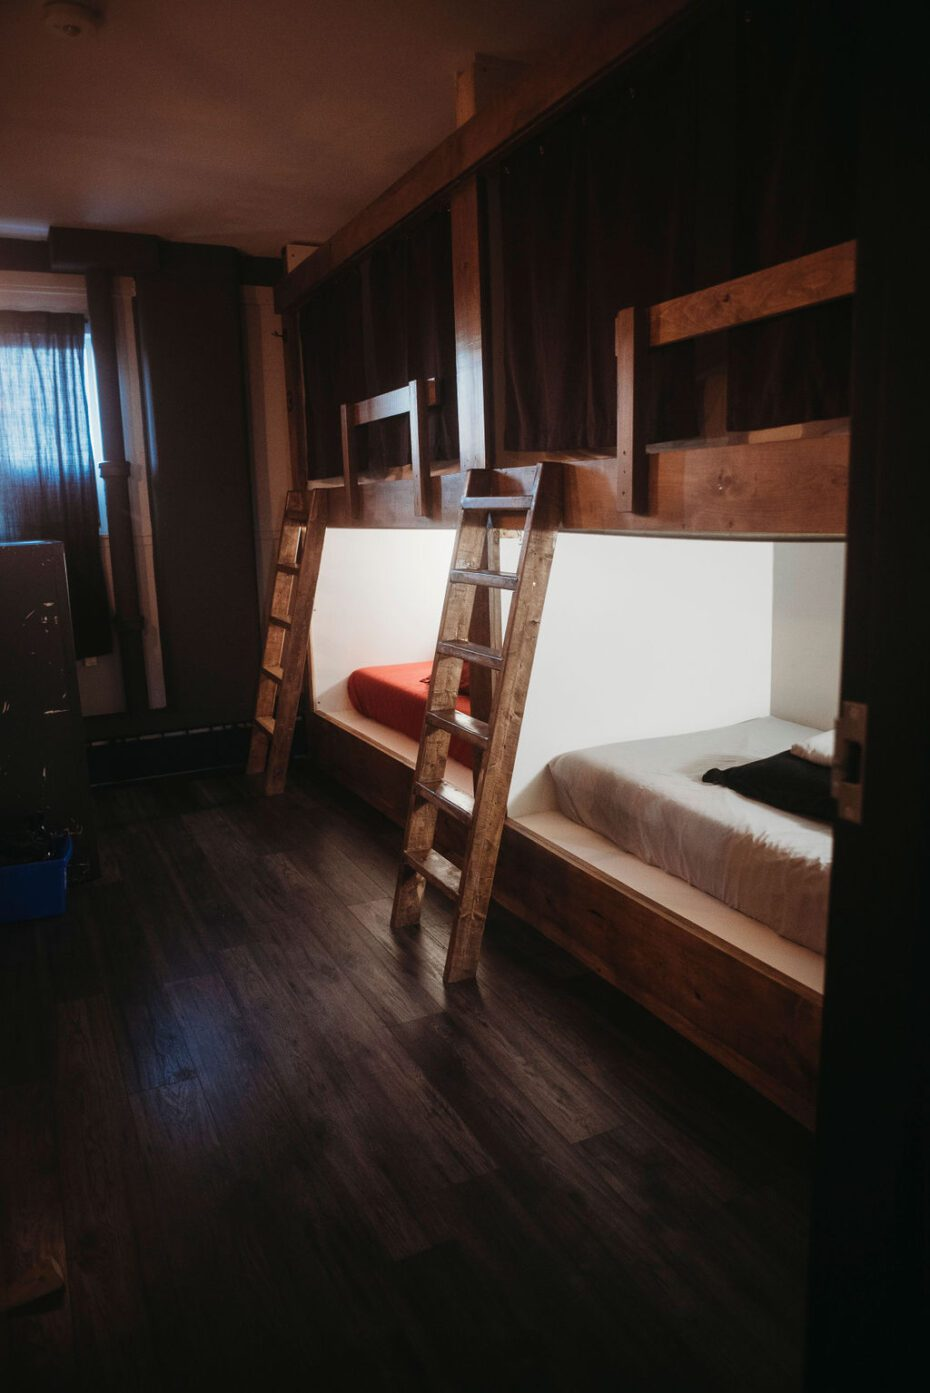 clean, safe, spacious single, dormitory beds, family friendly